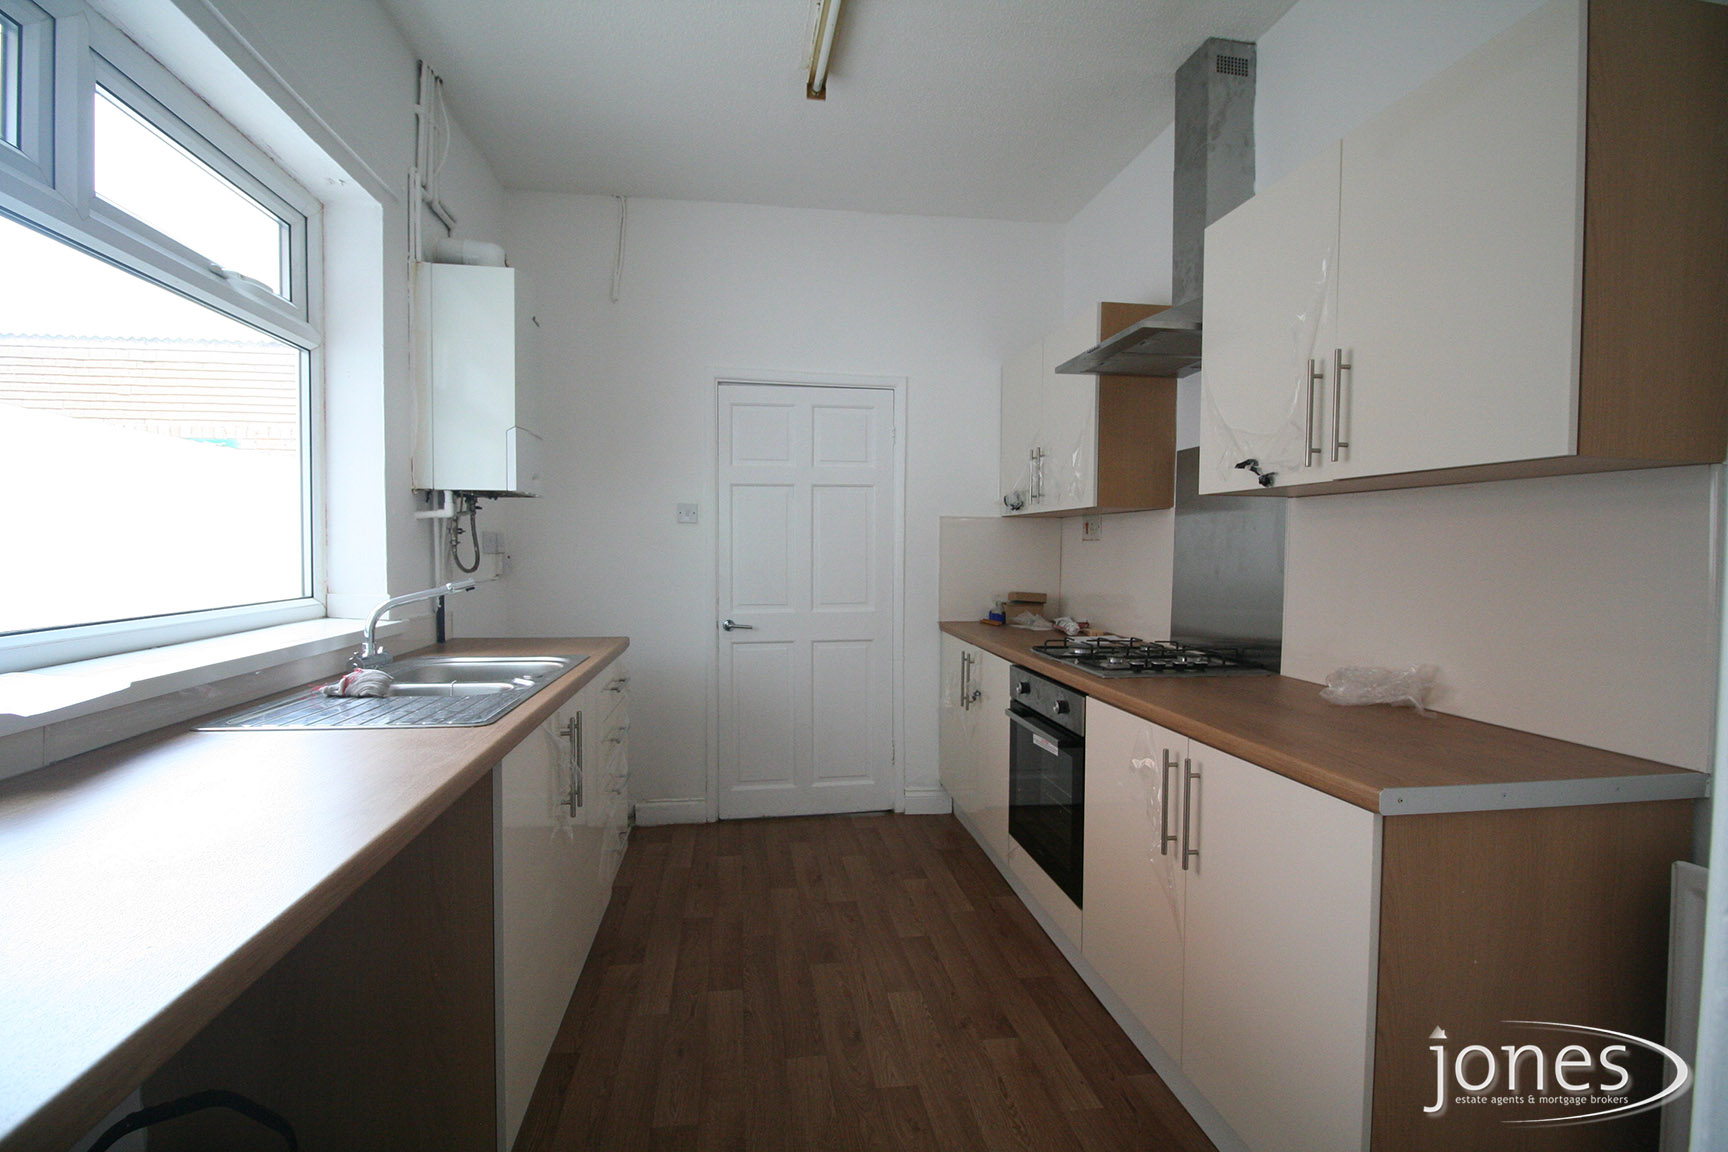 Home for Sale Let - Photo 02 Mansfield Avenue, Thornaby, Stockton on Tees, TS17 7HQ